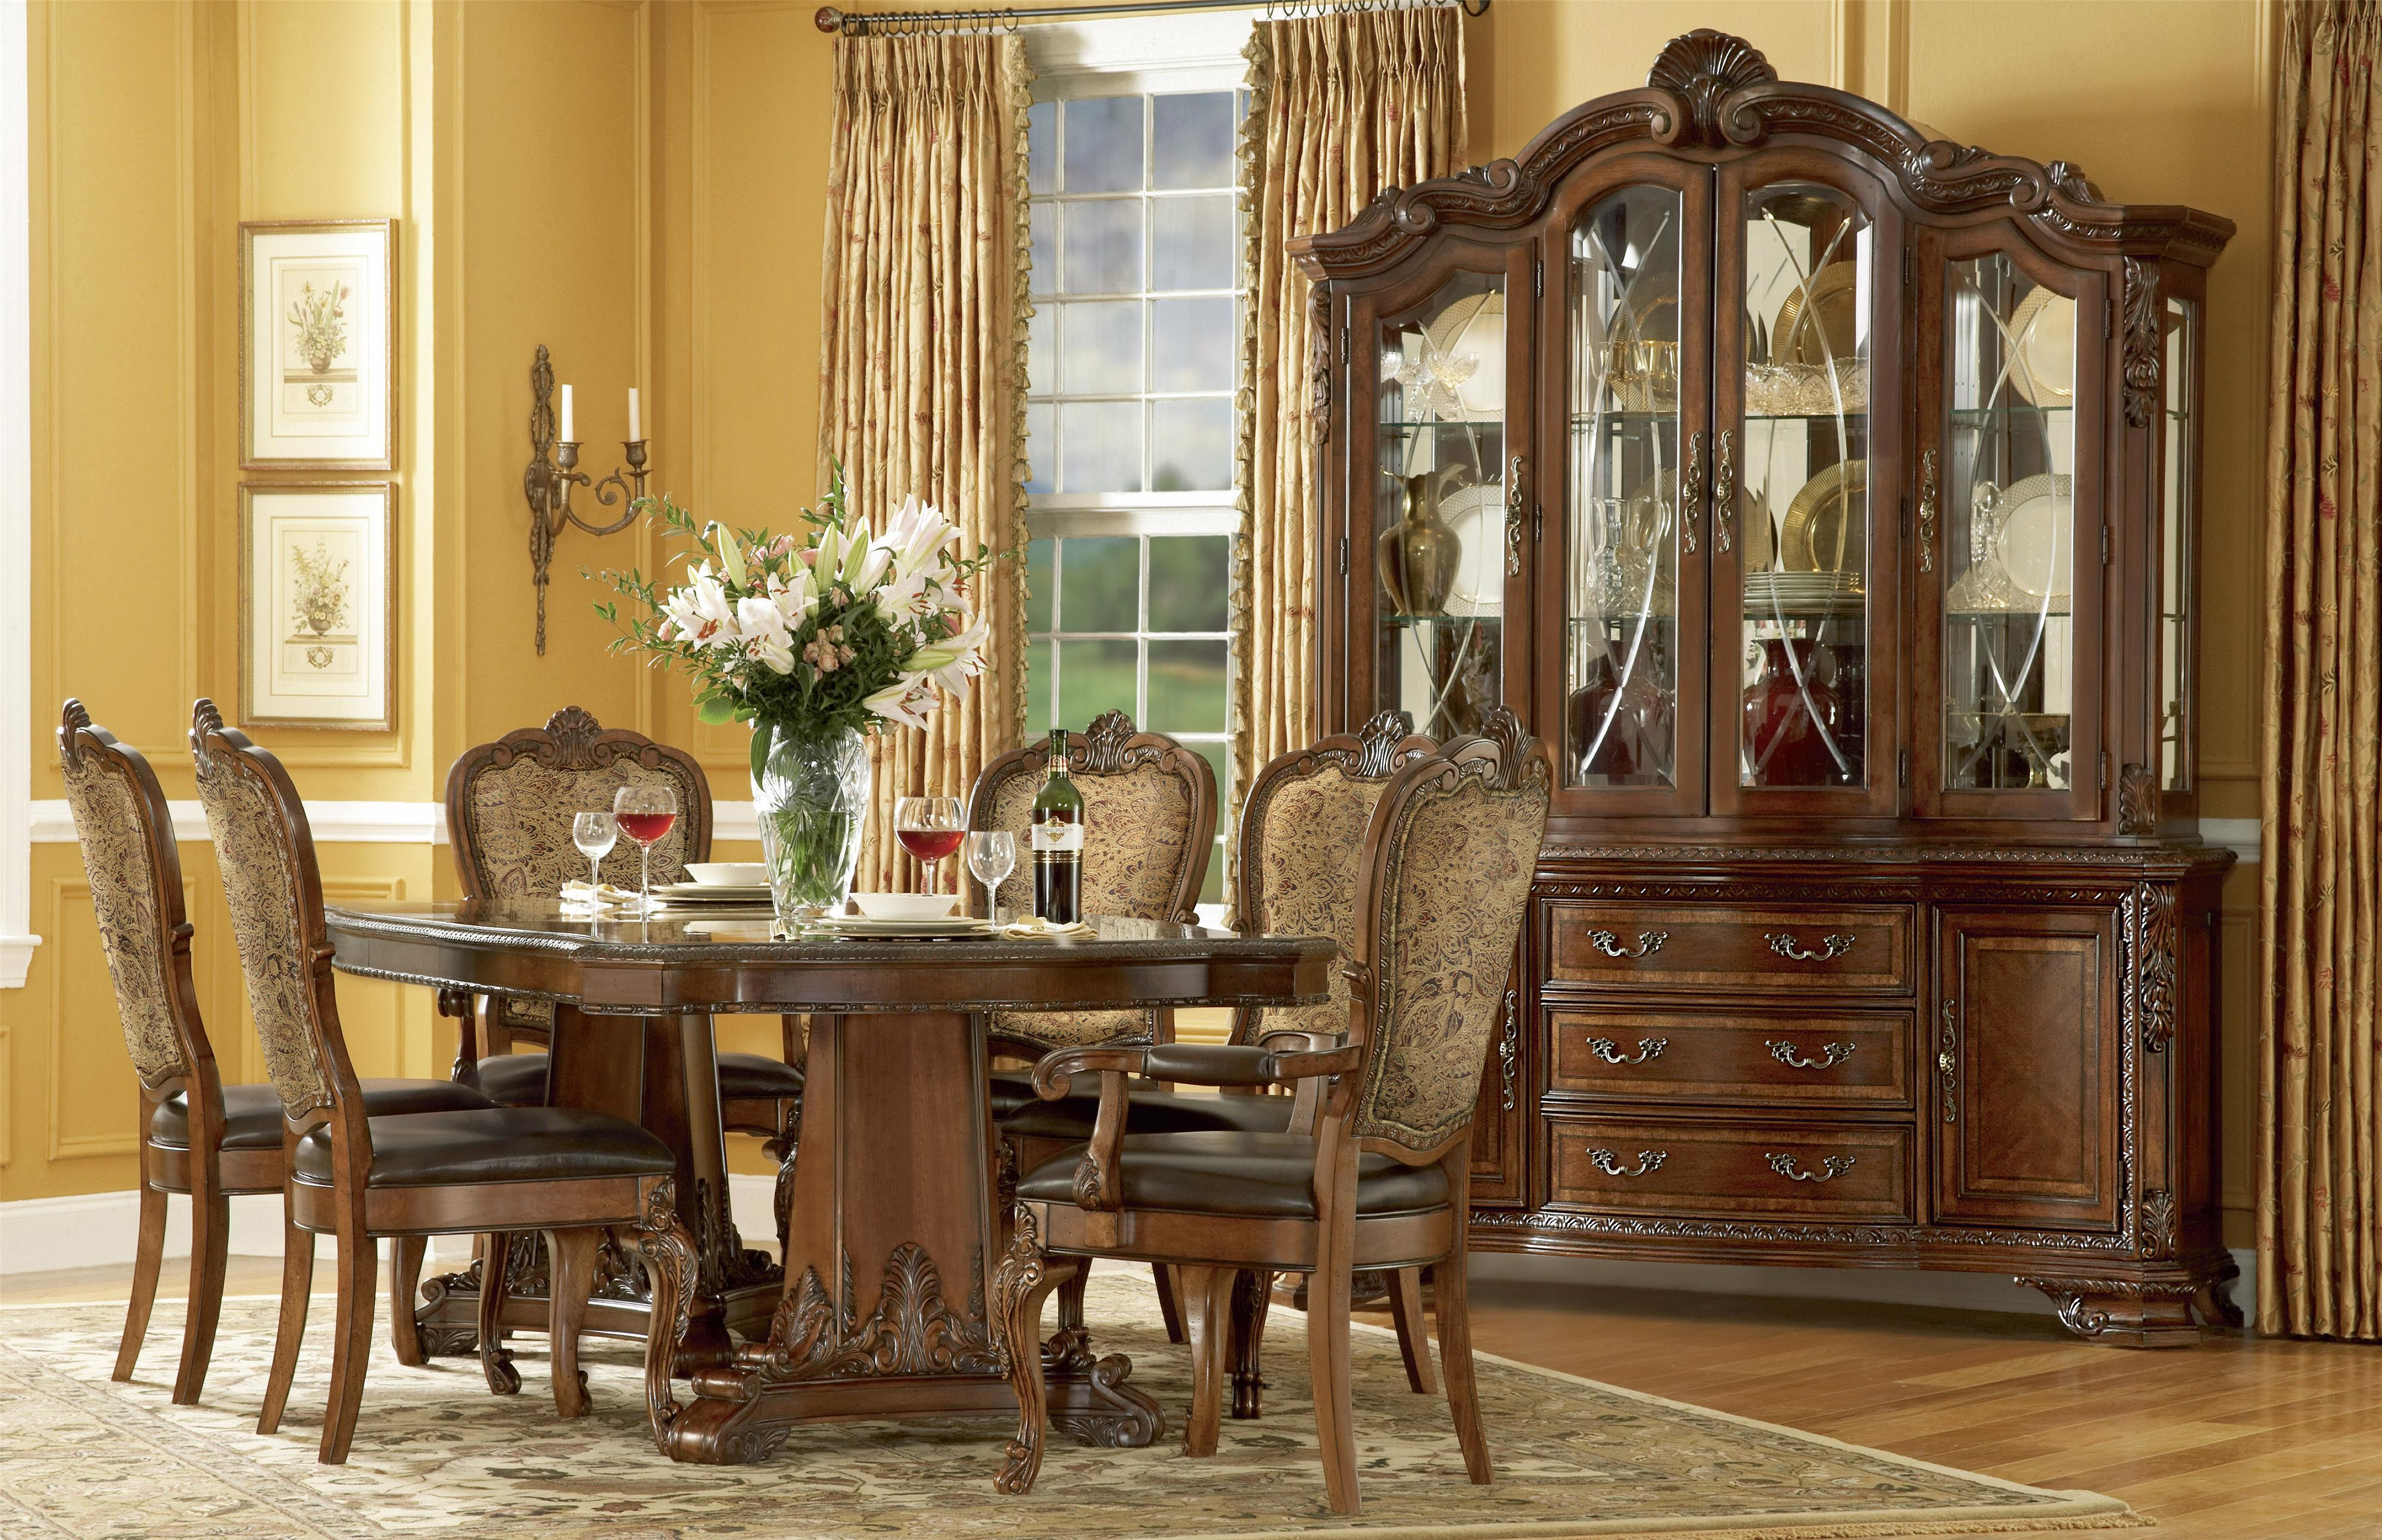 a.r.t. furniture inc old world formal dining room group | olinde's